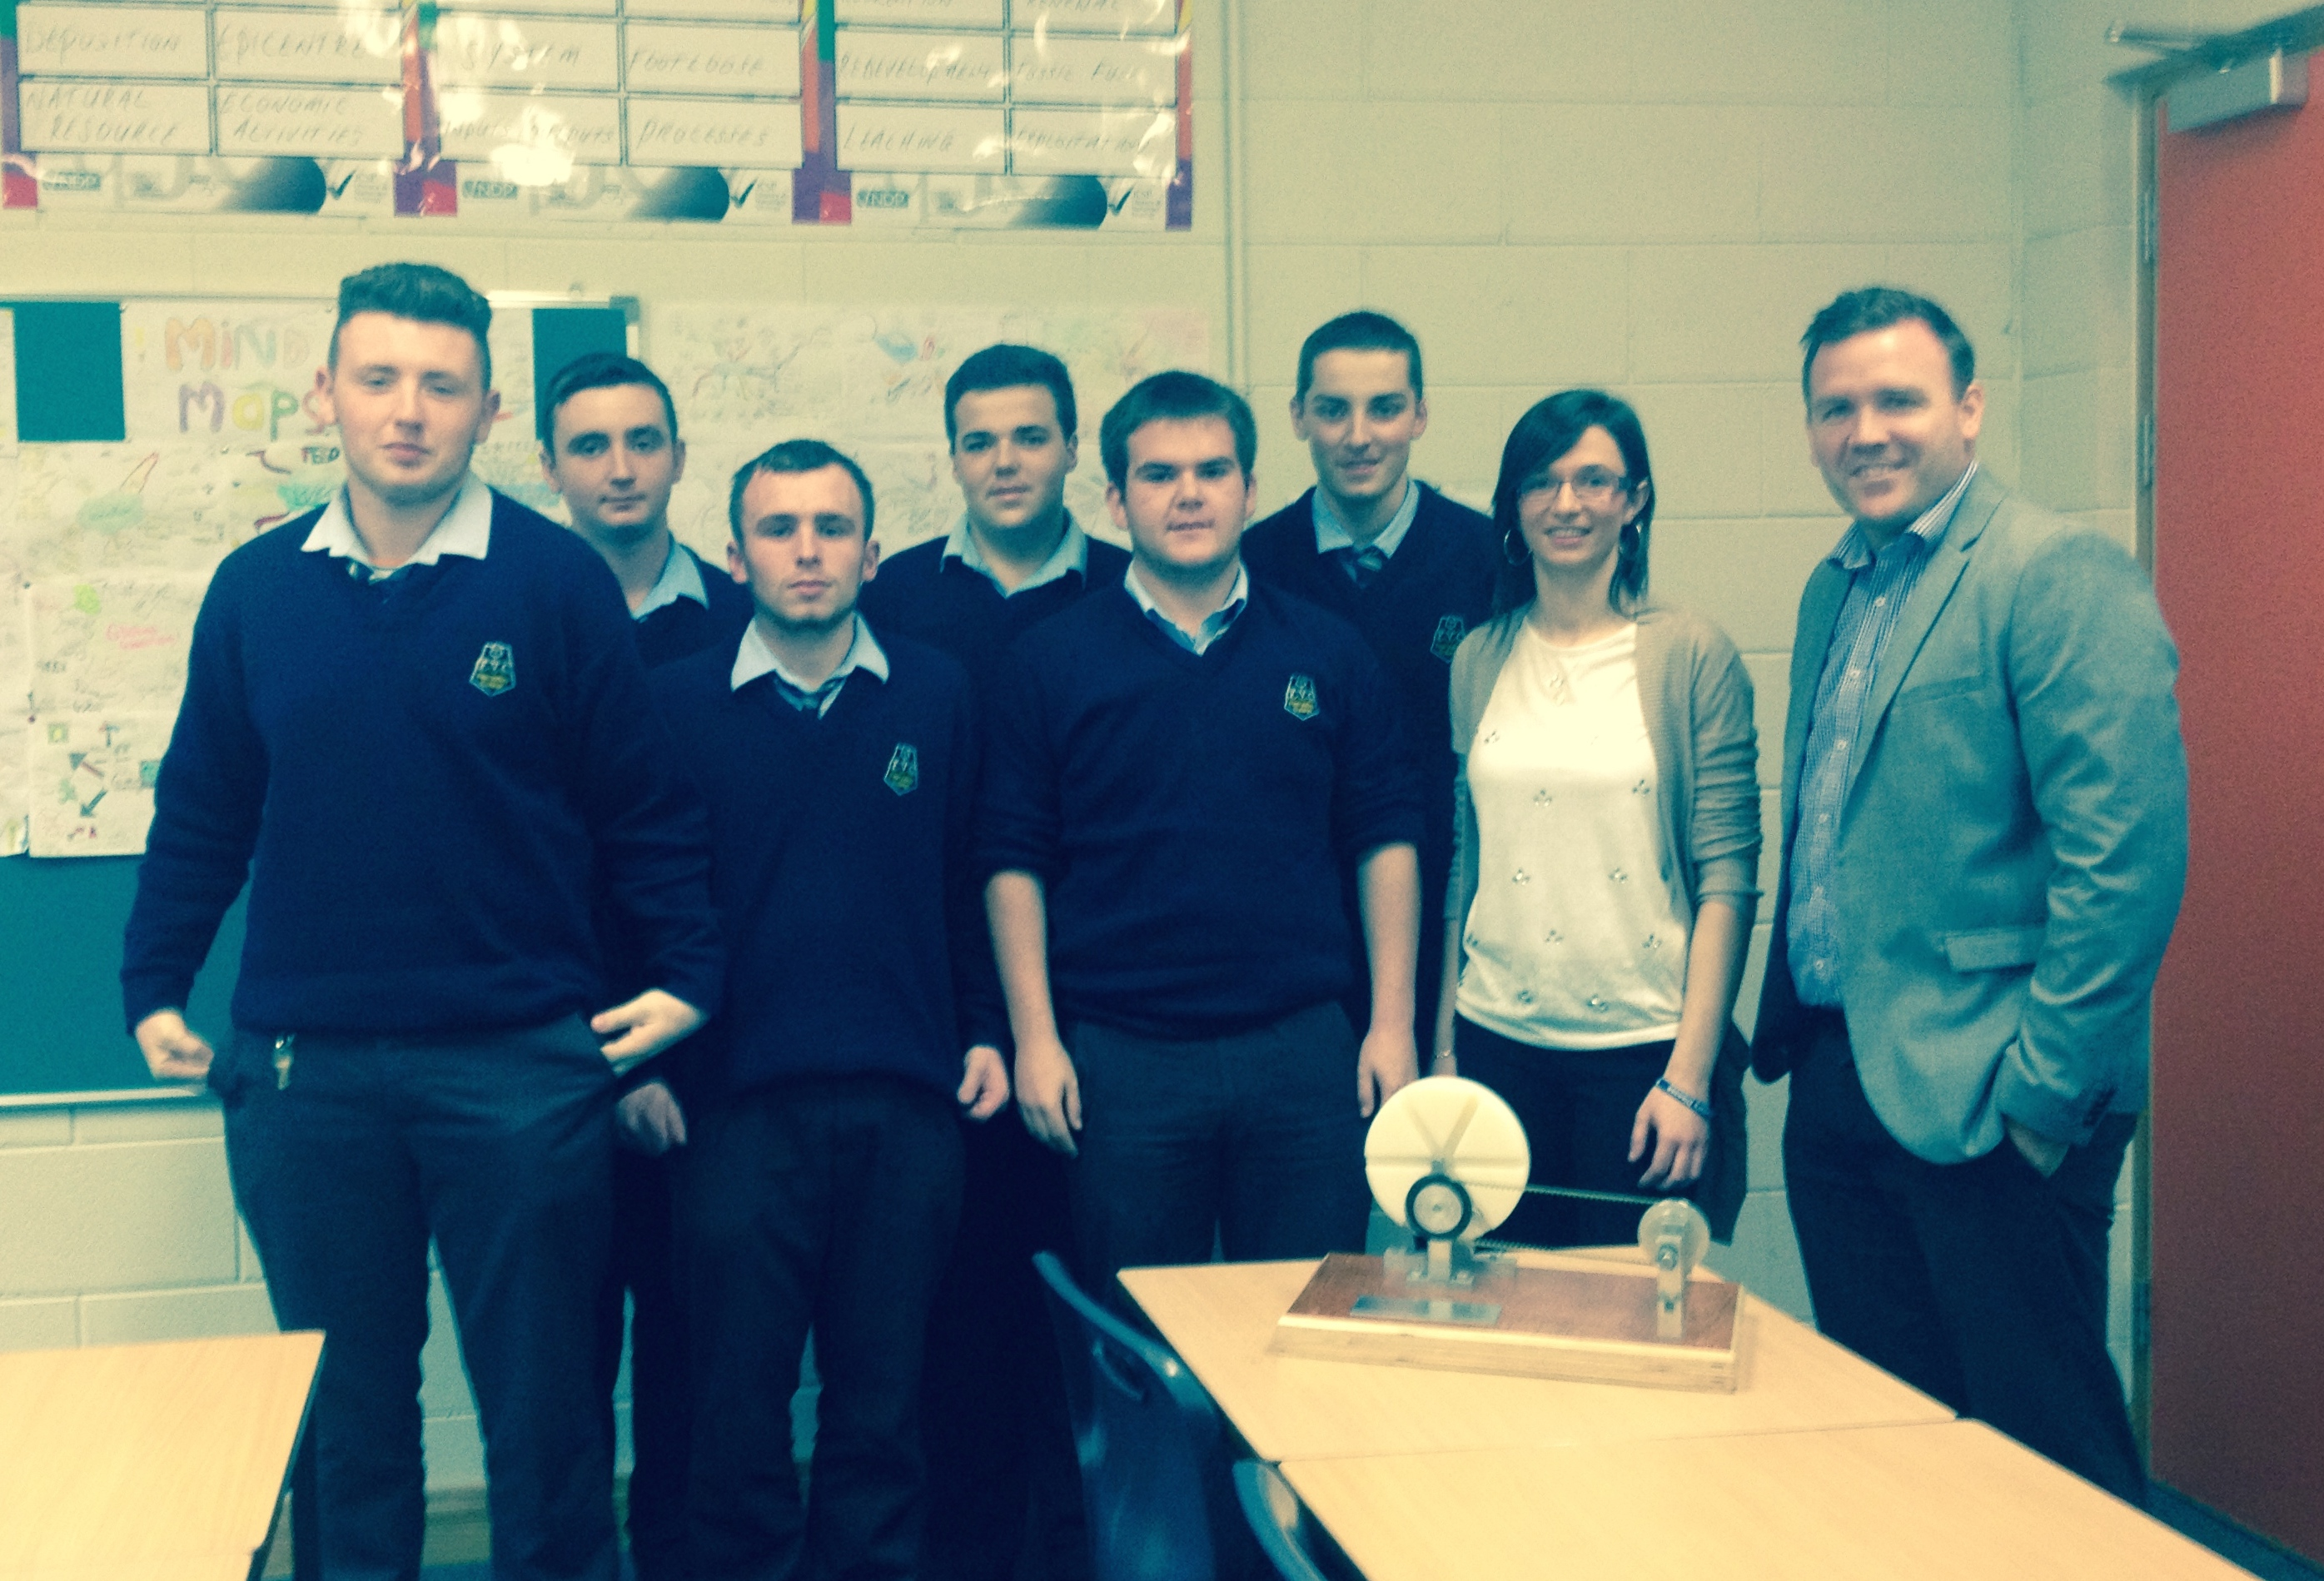 Lisa Mc Cafferty pictured with senior students Ryan Lindsay, Conan Gallagher, Kyle Gallagher, Luke Gillespie, Michael Mc Colgan and Michael Mc Menamin. Also pictured is Mr White